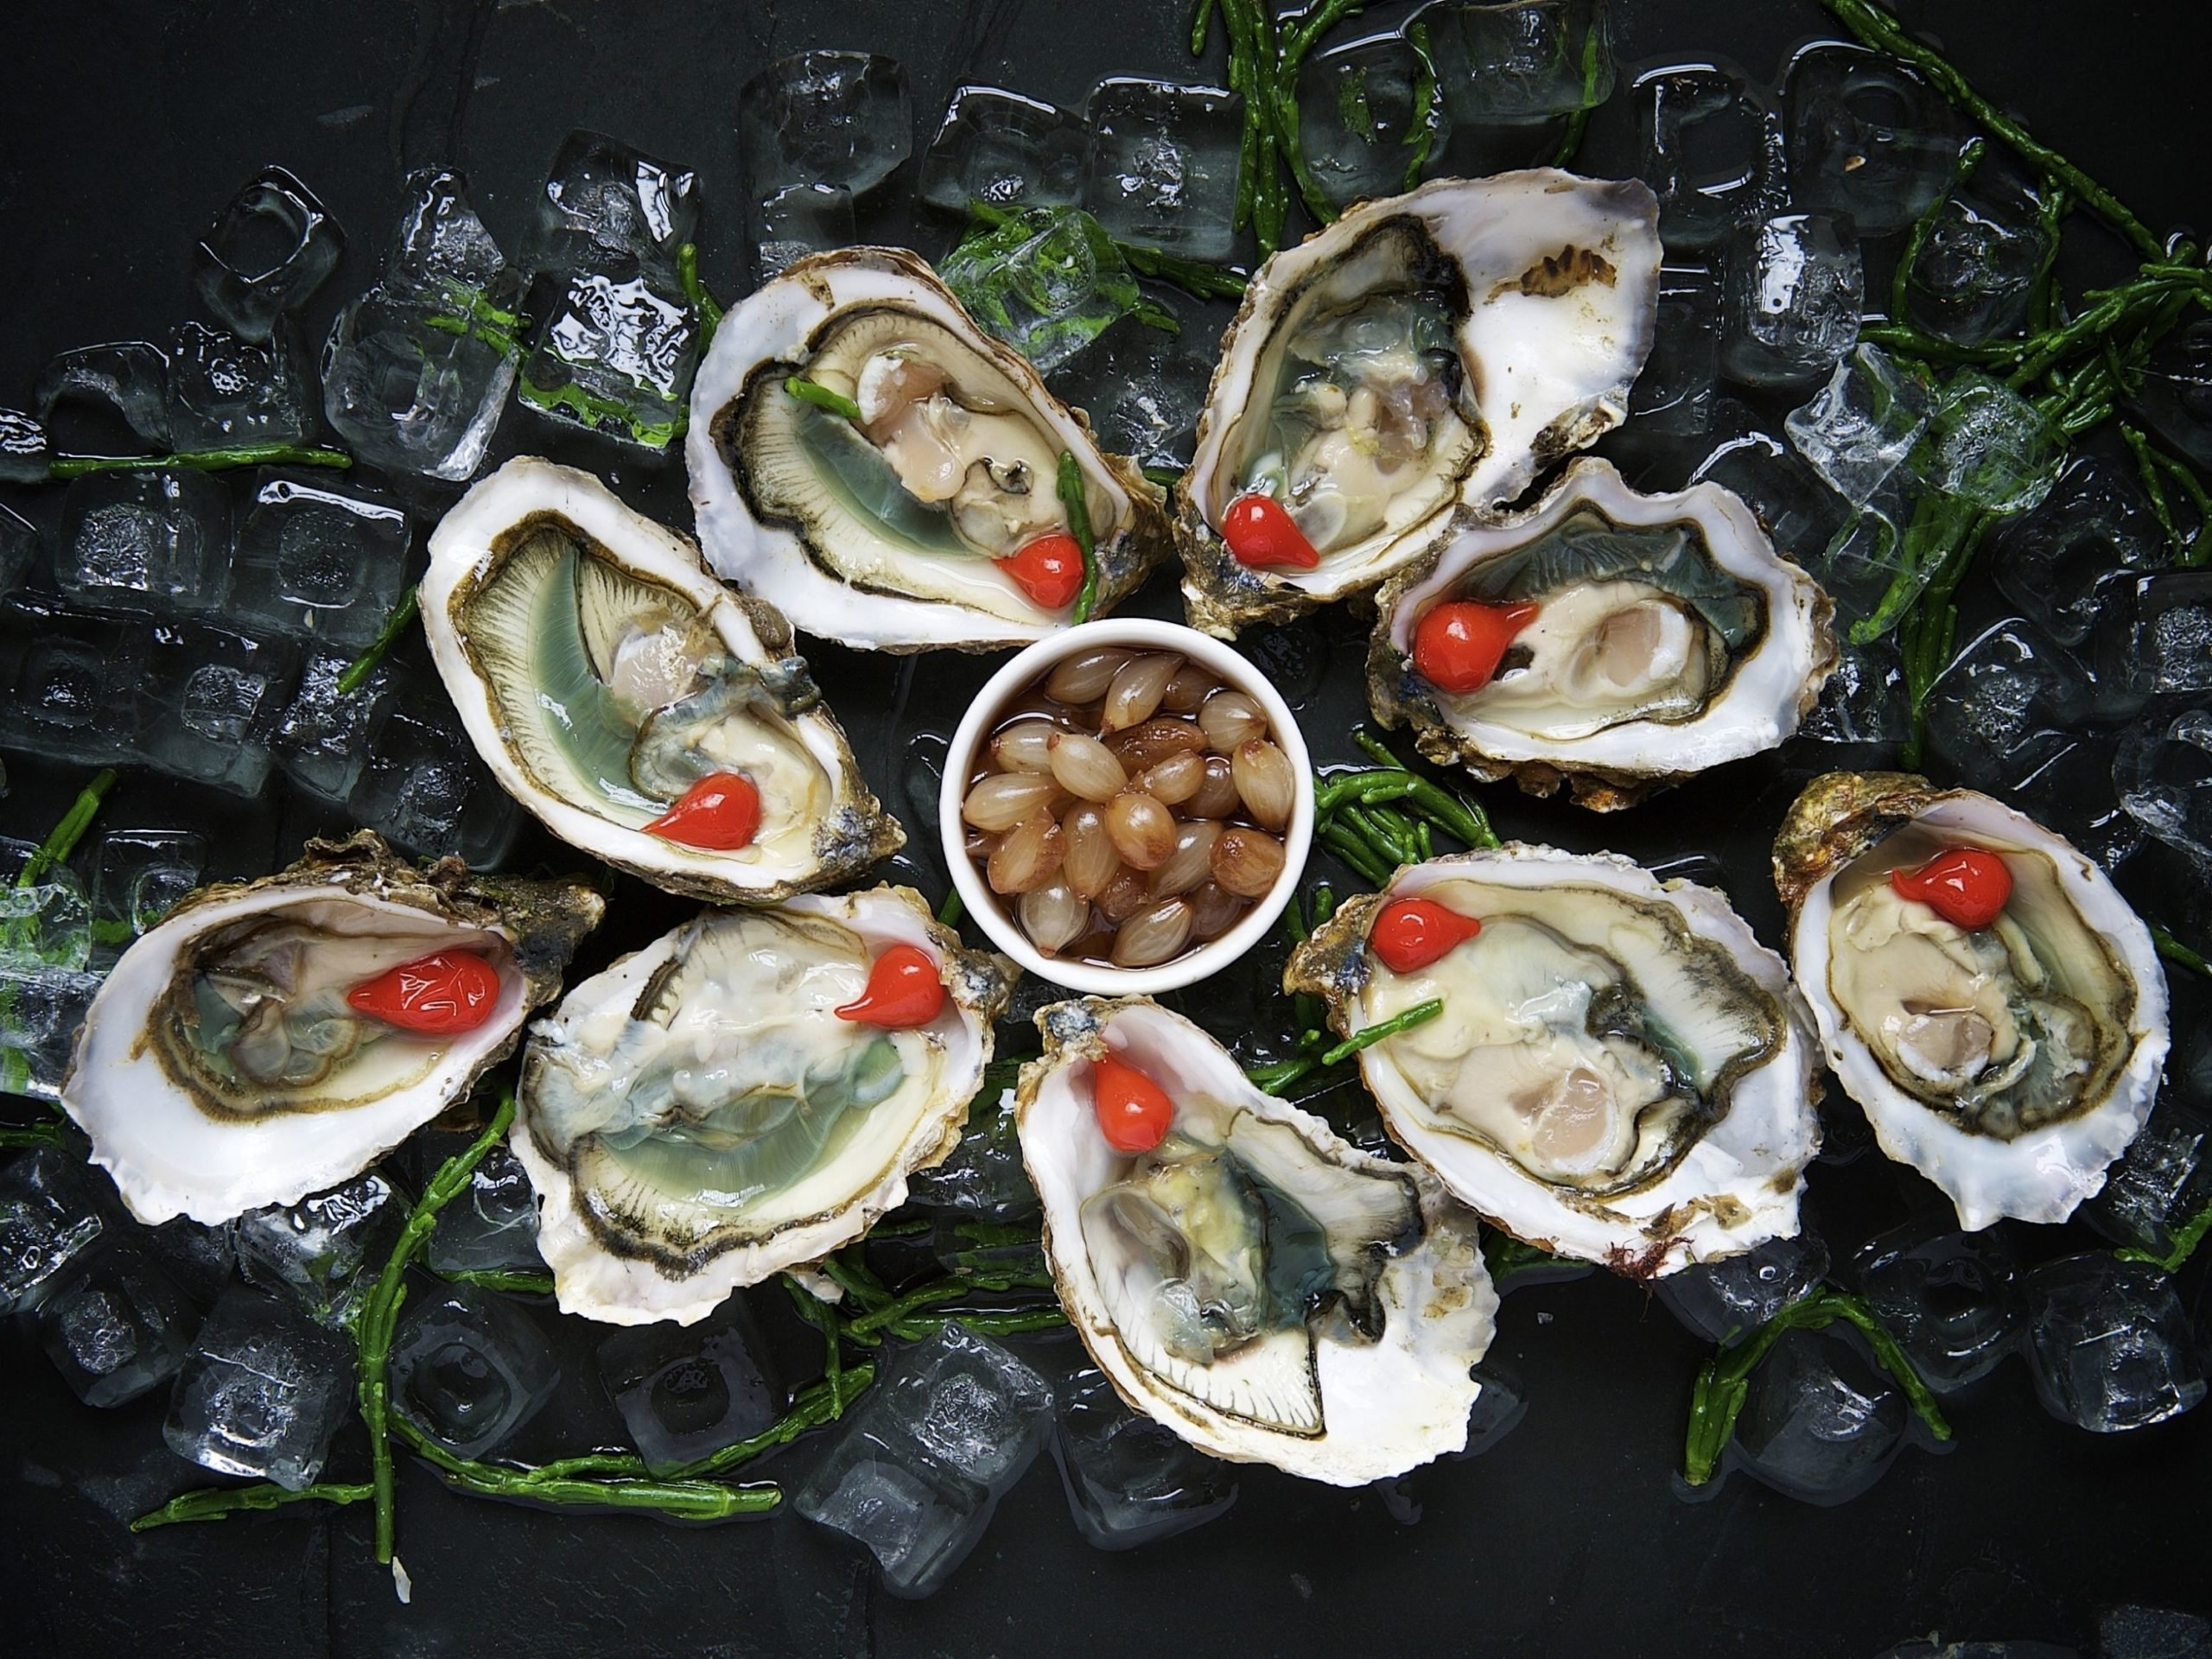 Oysters with a dip